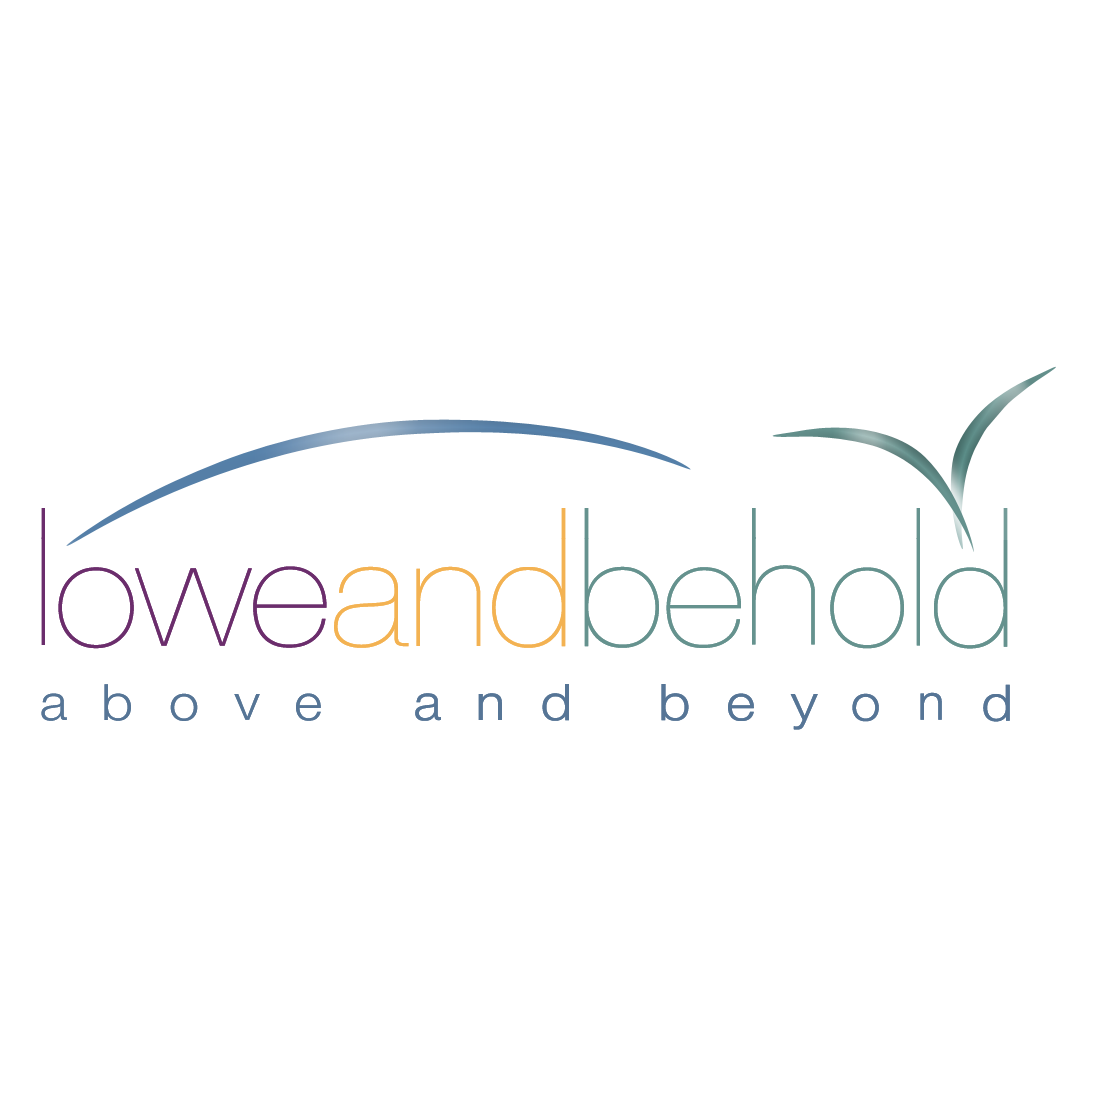 Lowe and Behold, LLC